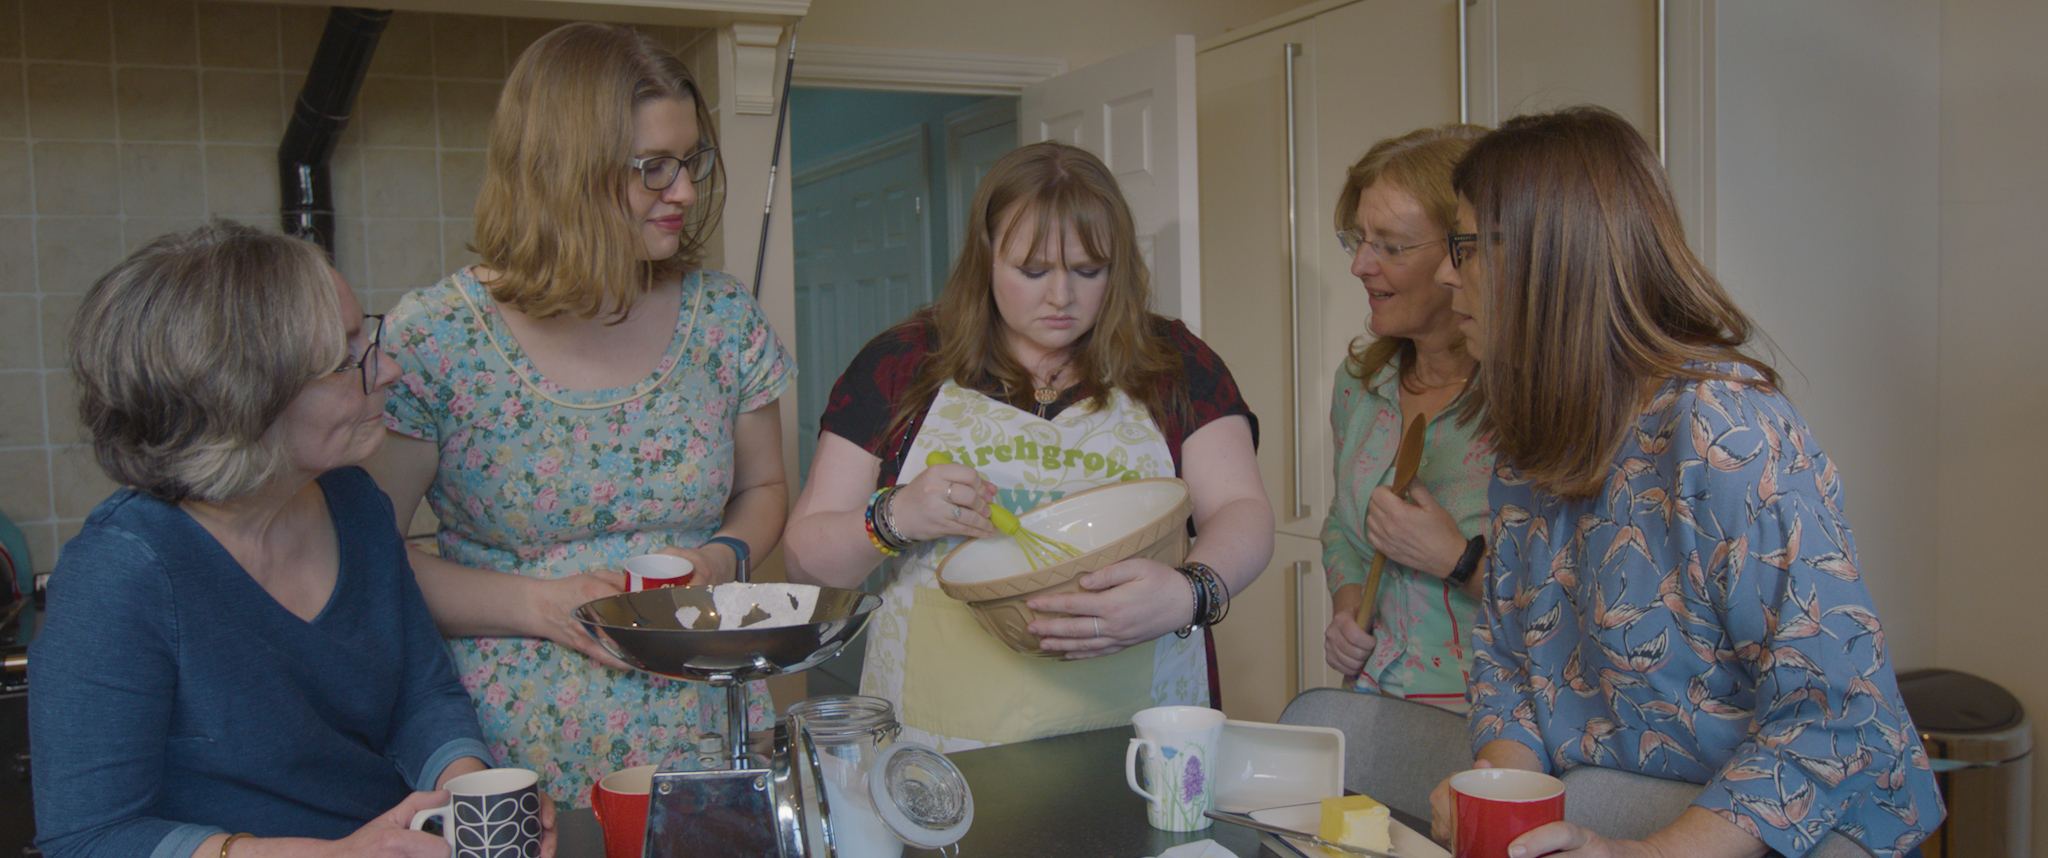 a group of women gather around a central female whisking the contents of a mixing bowl